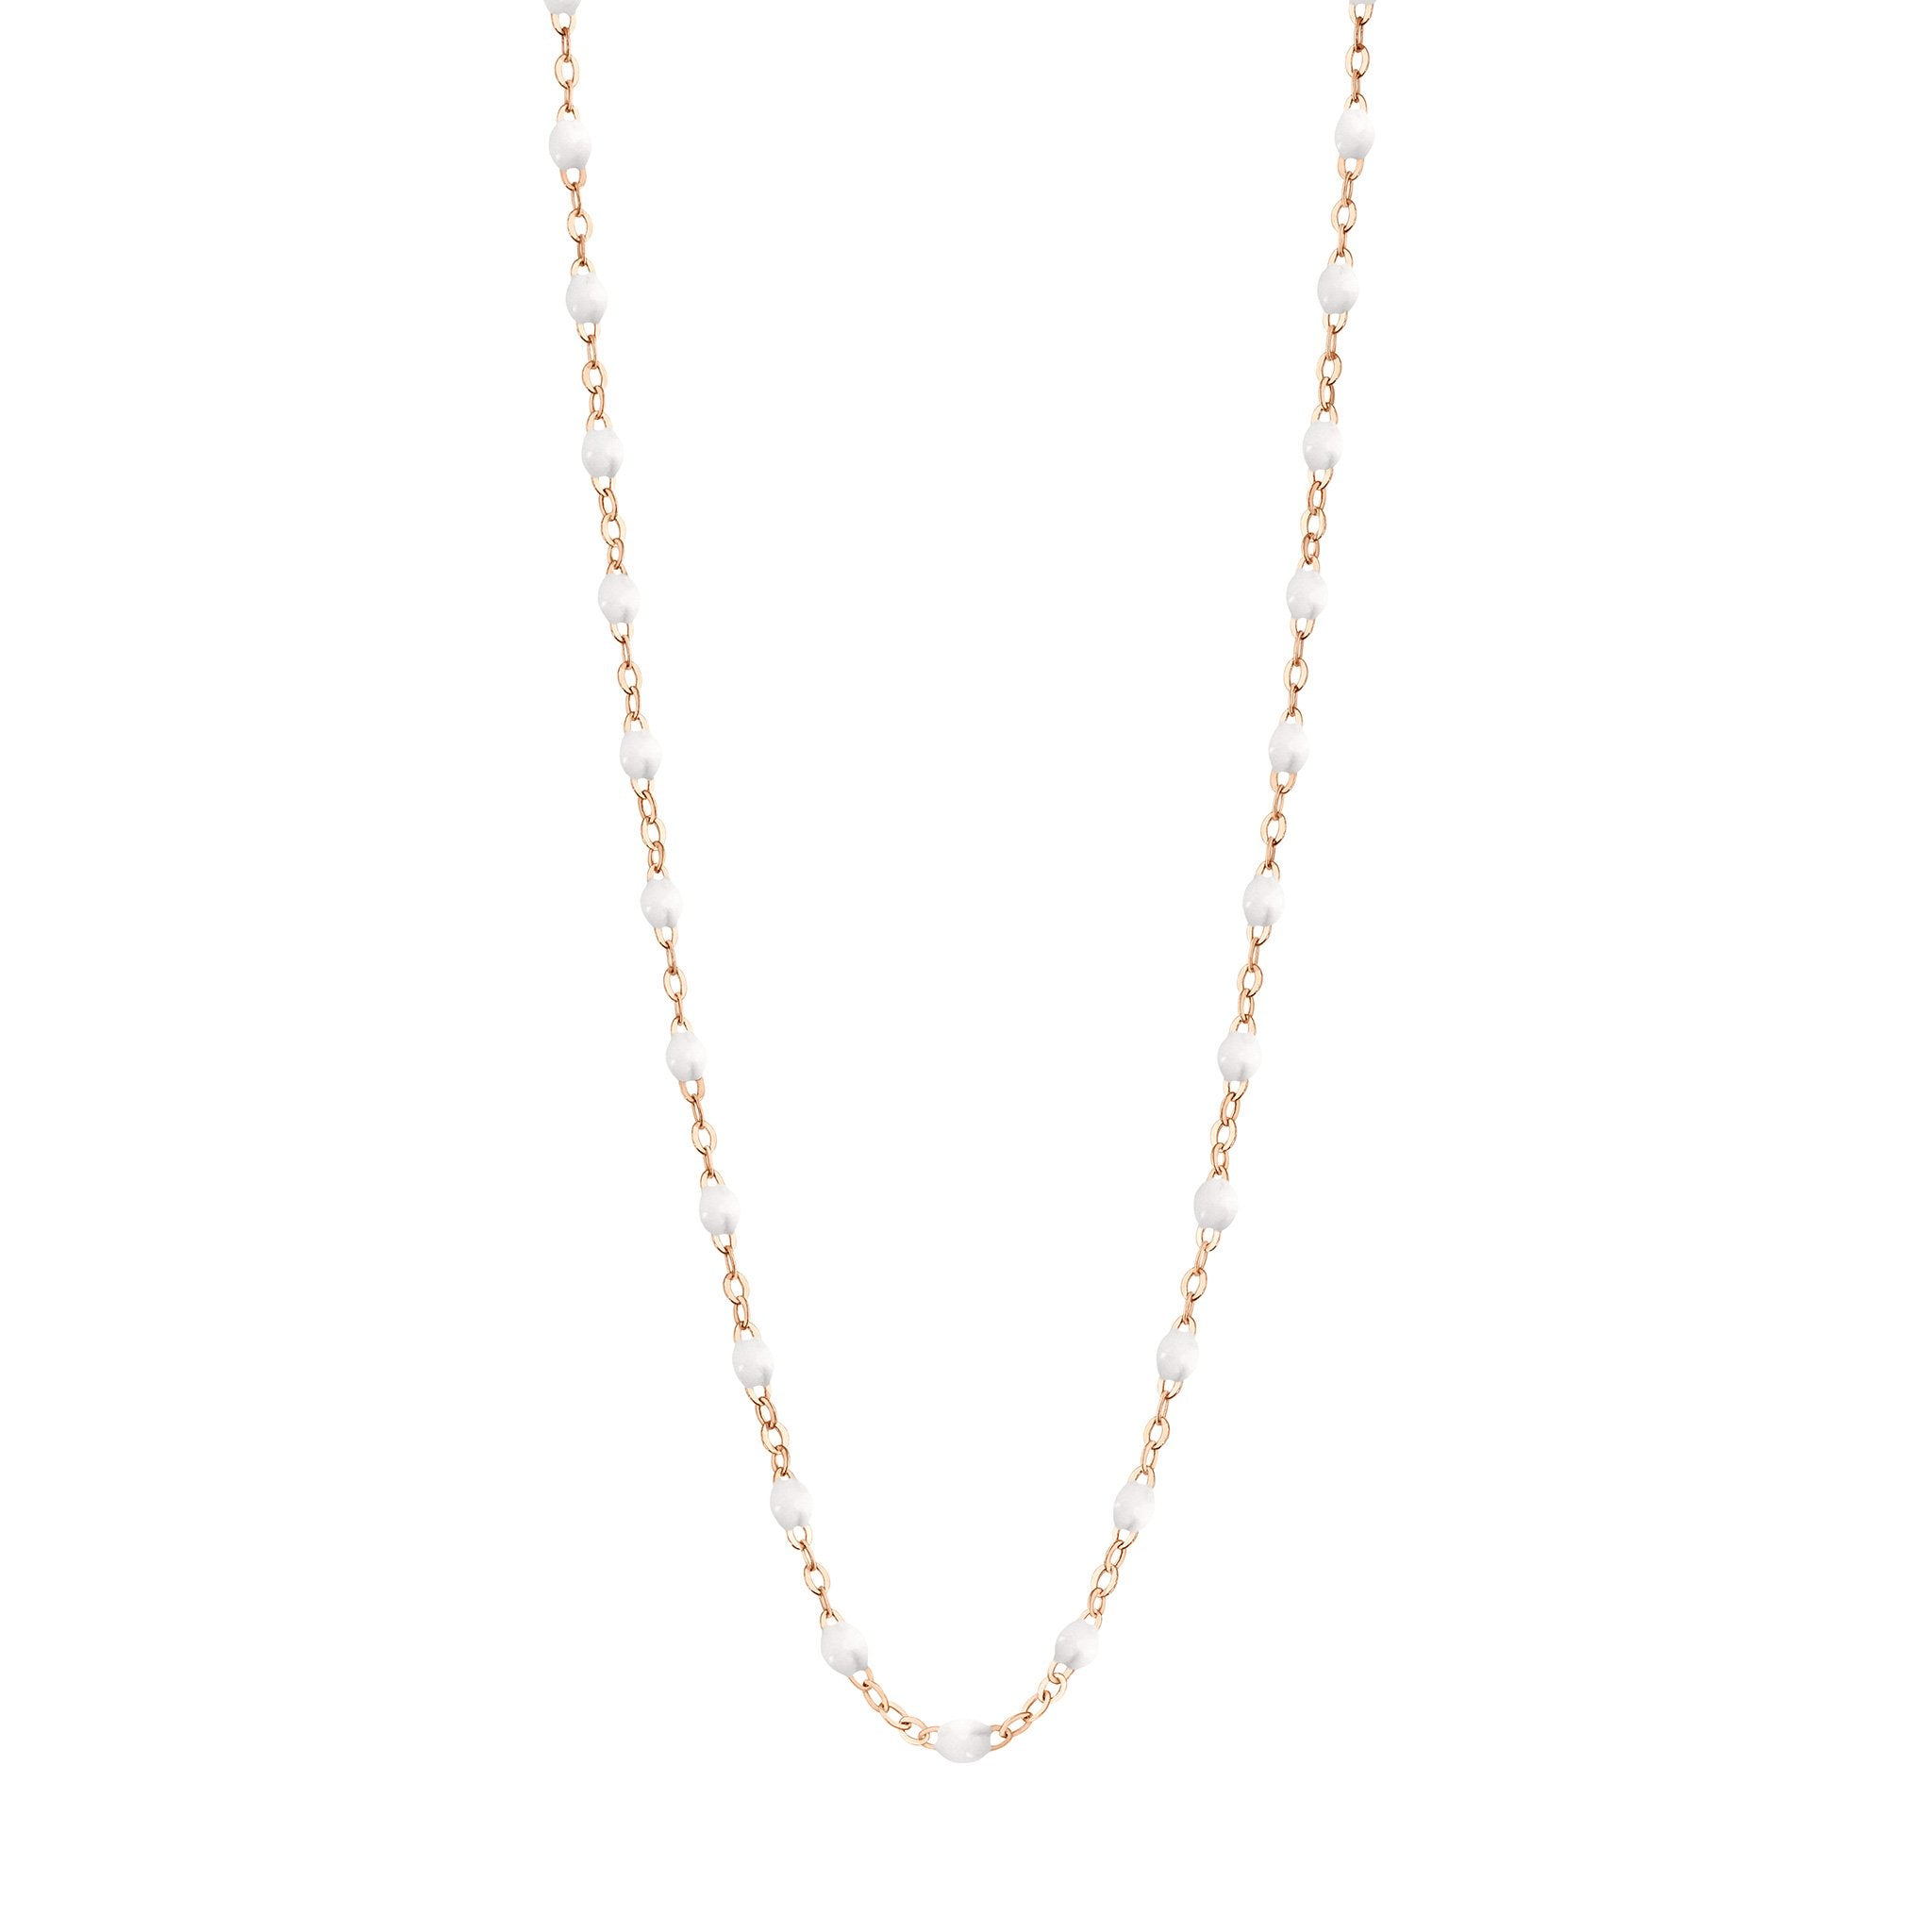 Gigi Clozeau - Classic Gigi White necklace, Rose Gold, 16.5""